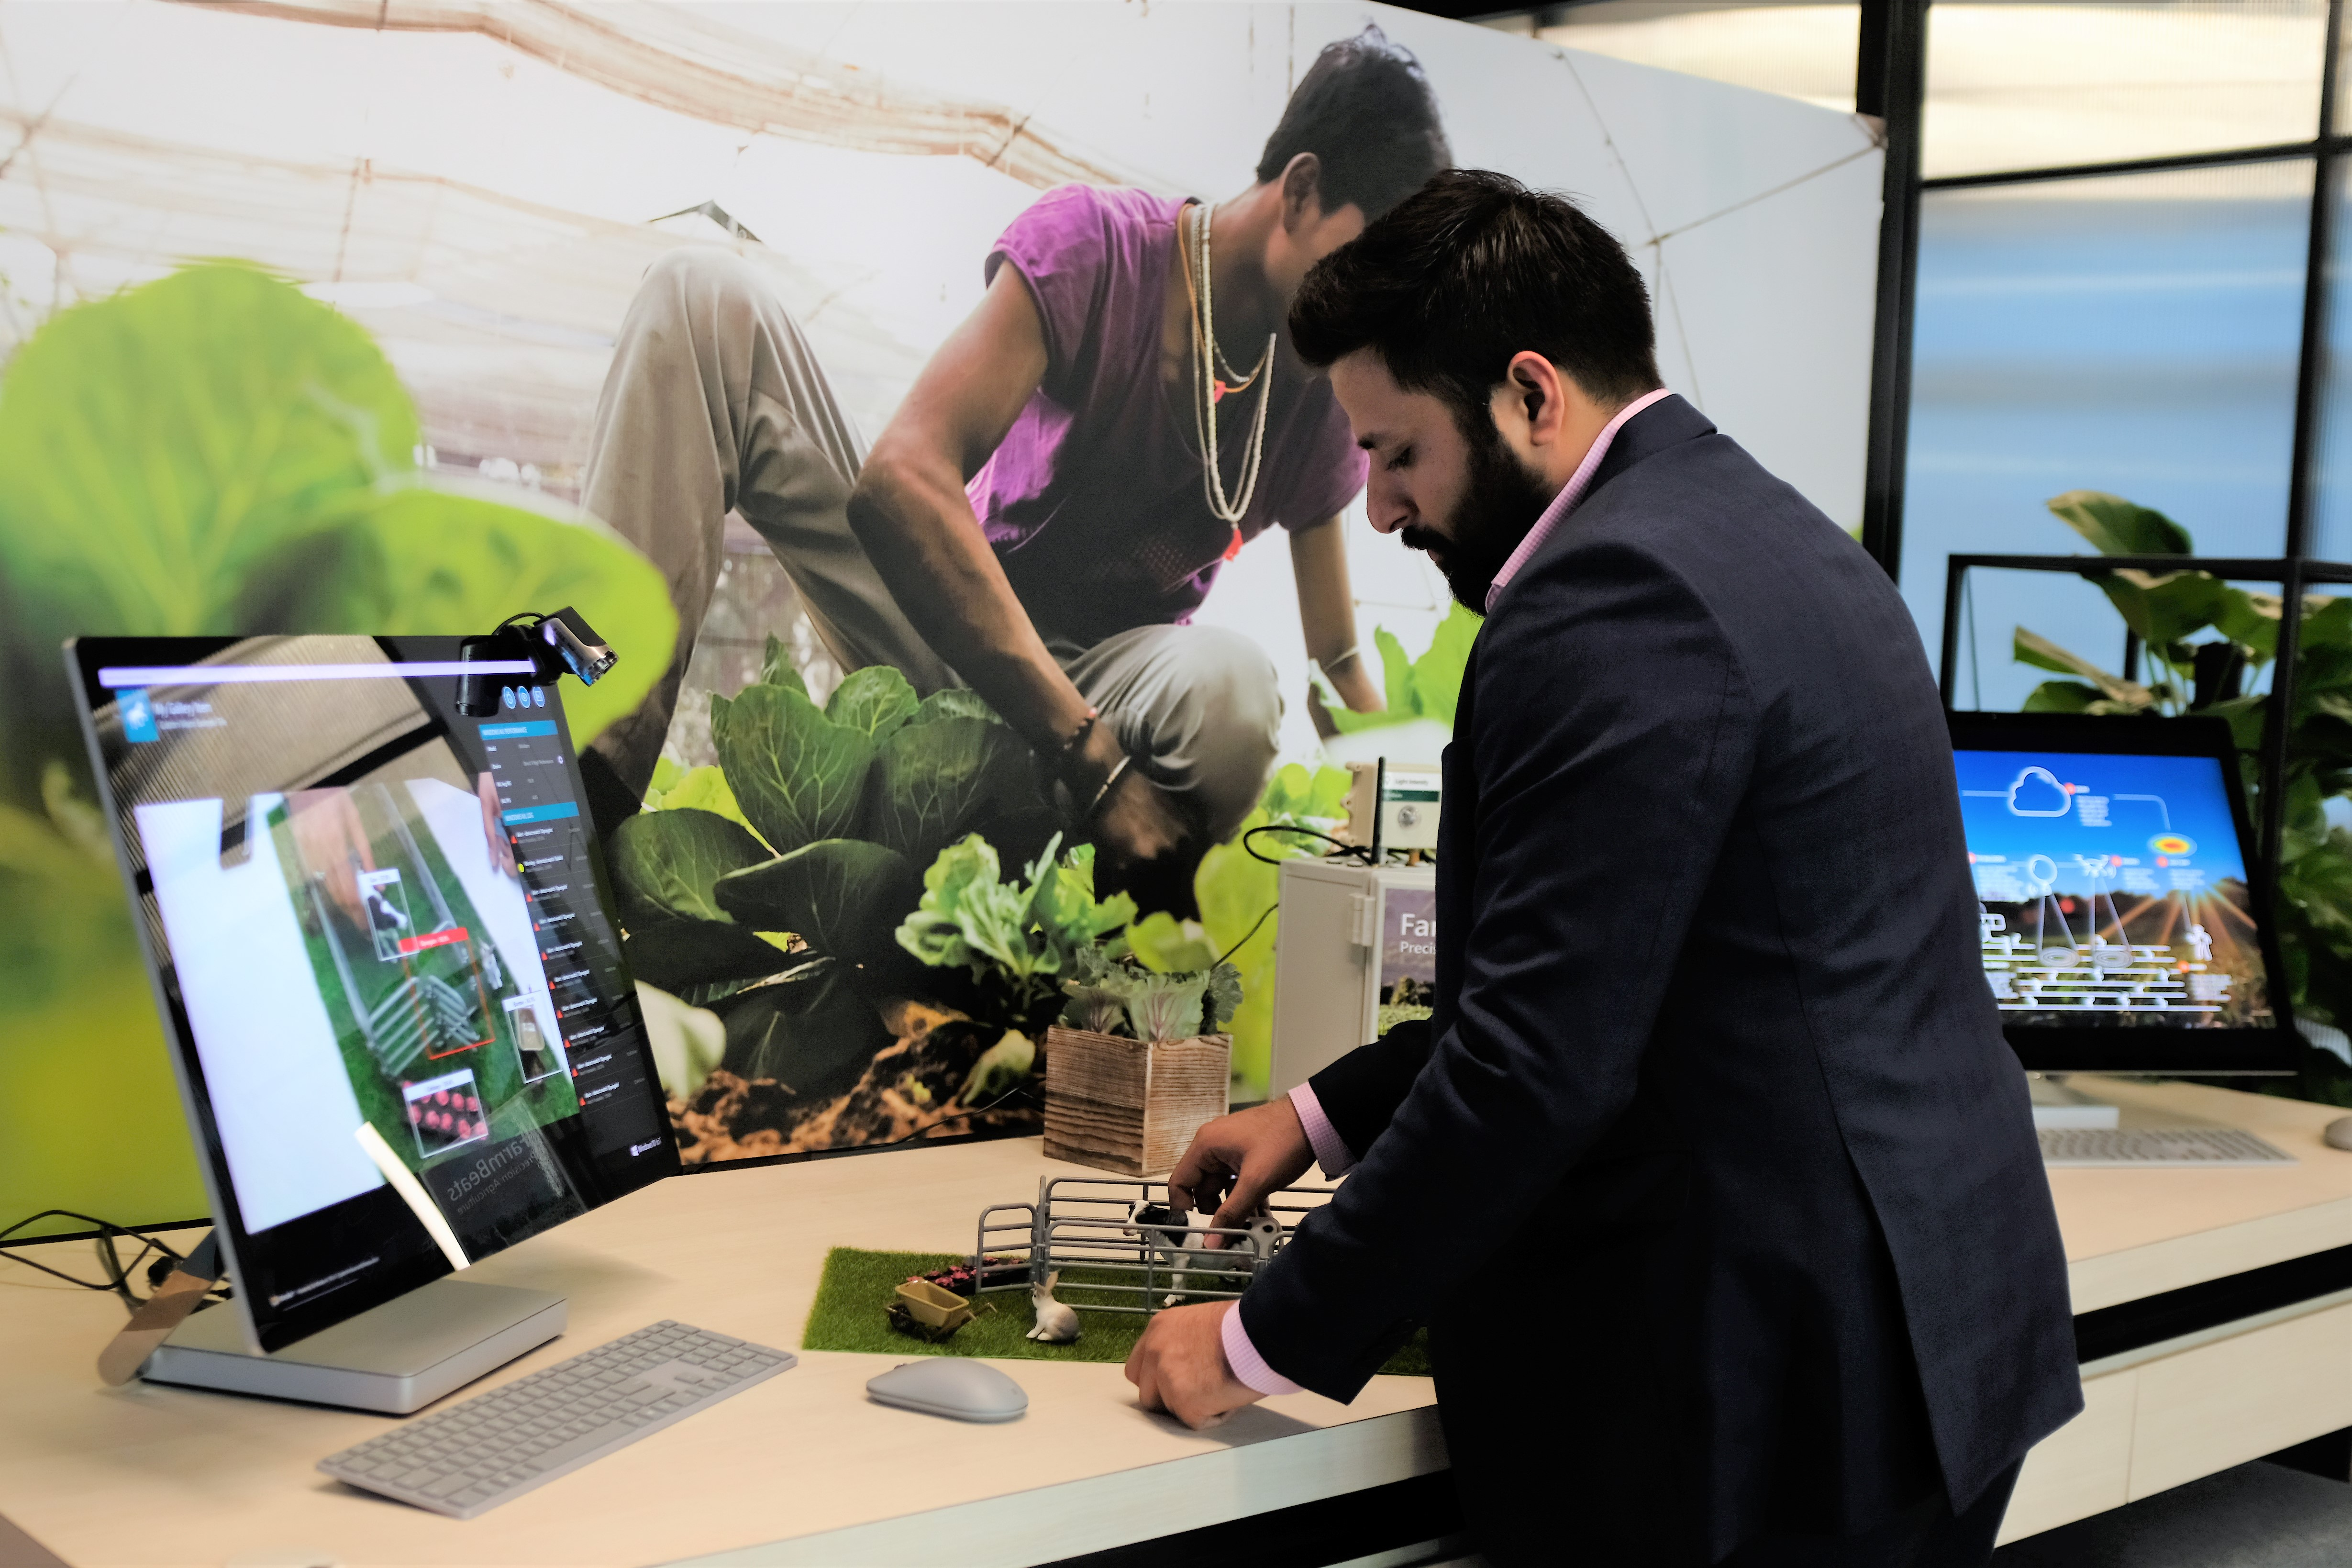 A man with model farm animals in front of a PC screen.